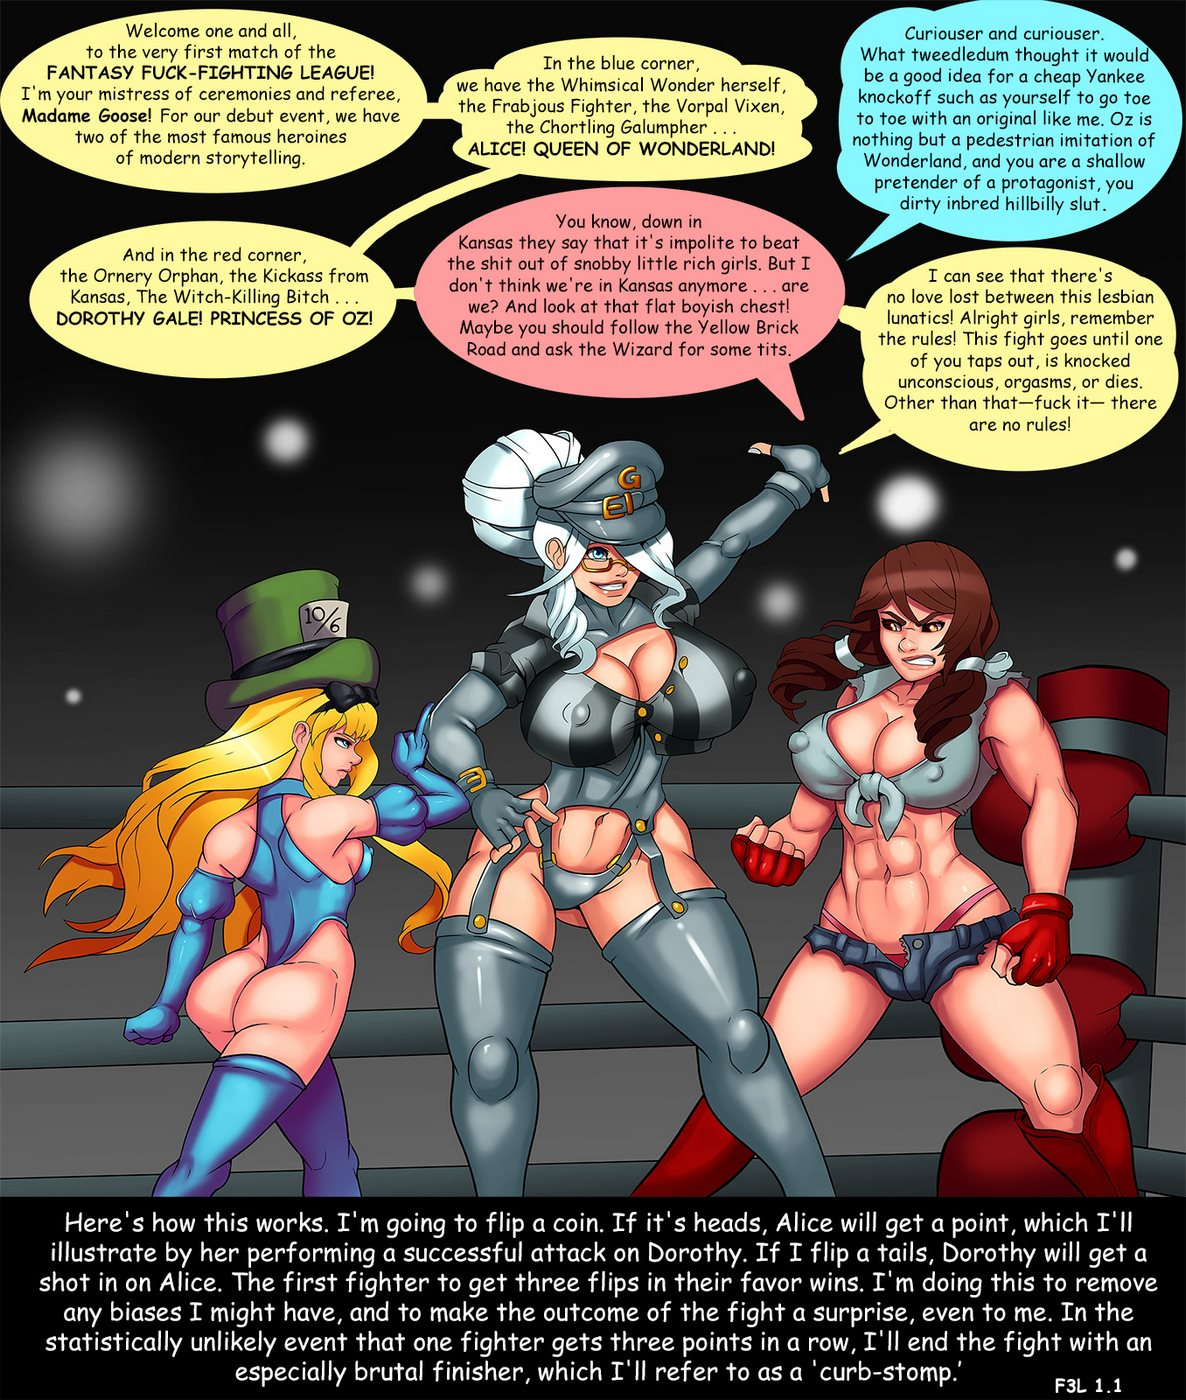 Fantasy Fuck- Fighting League [Markydaysaid]